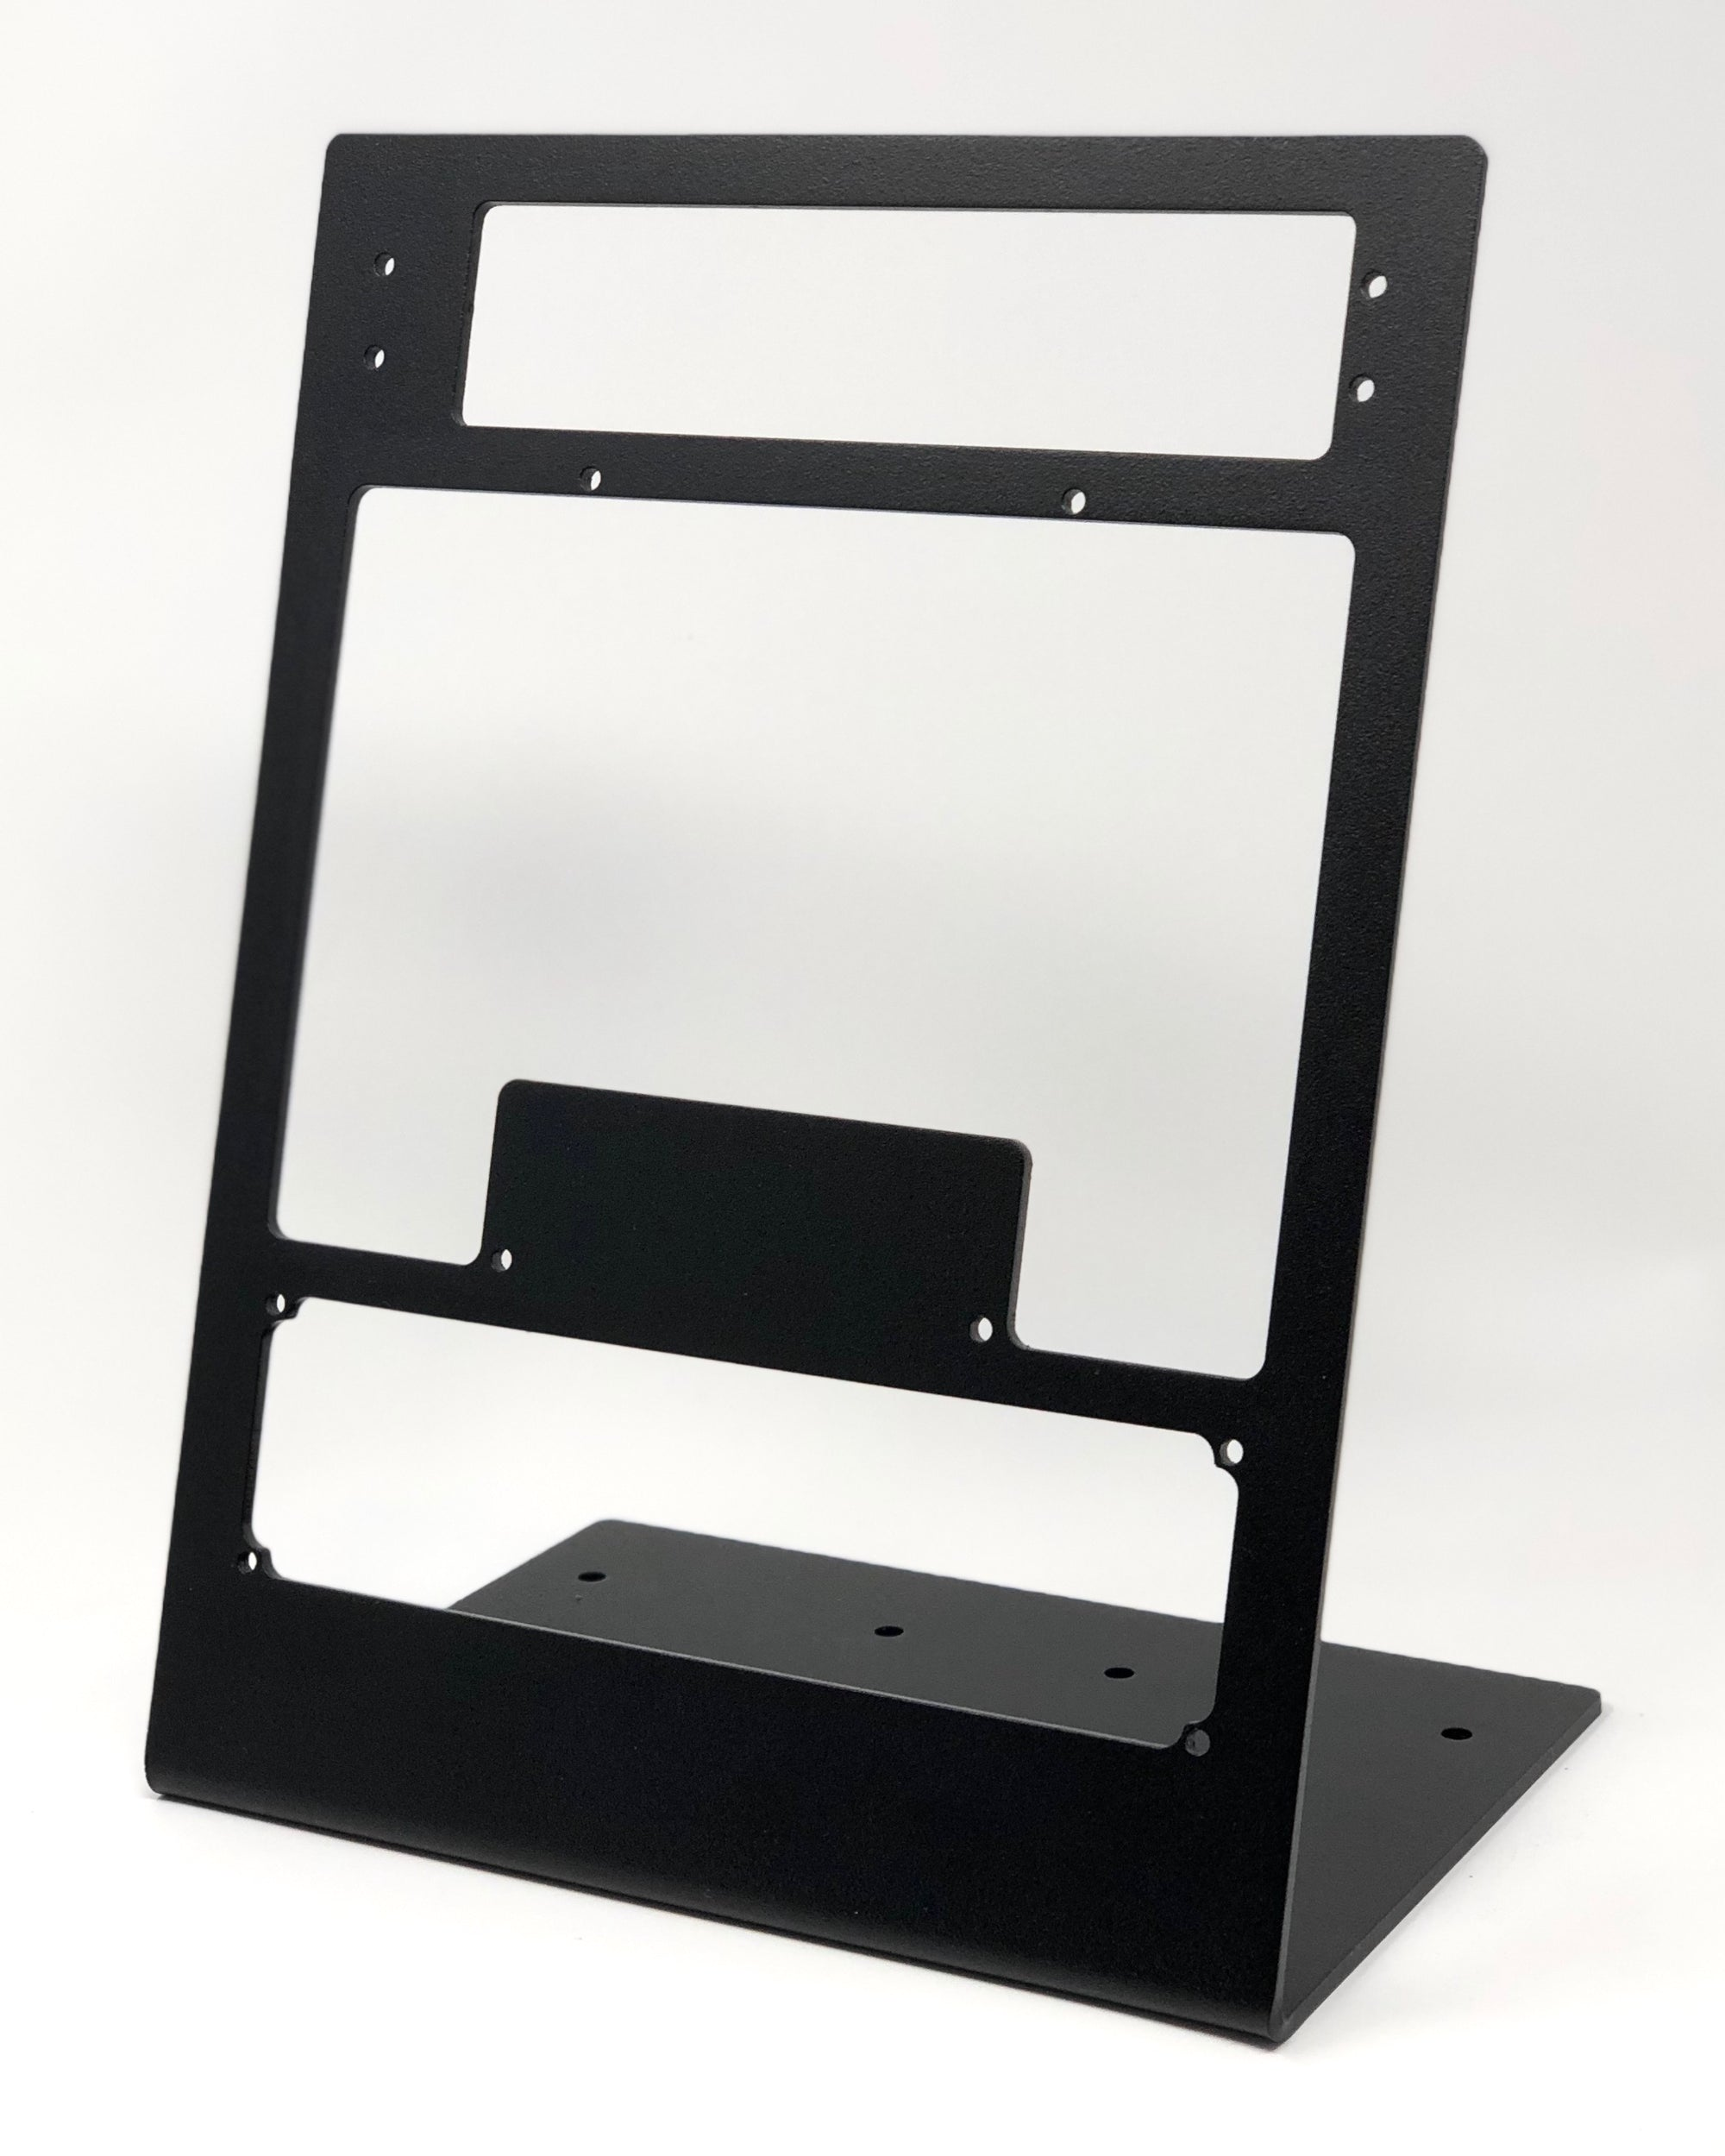 Desktop stand for RealSimGear GNS530 GMA350 GFC700